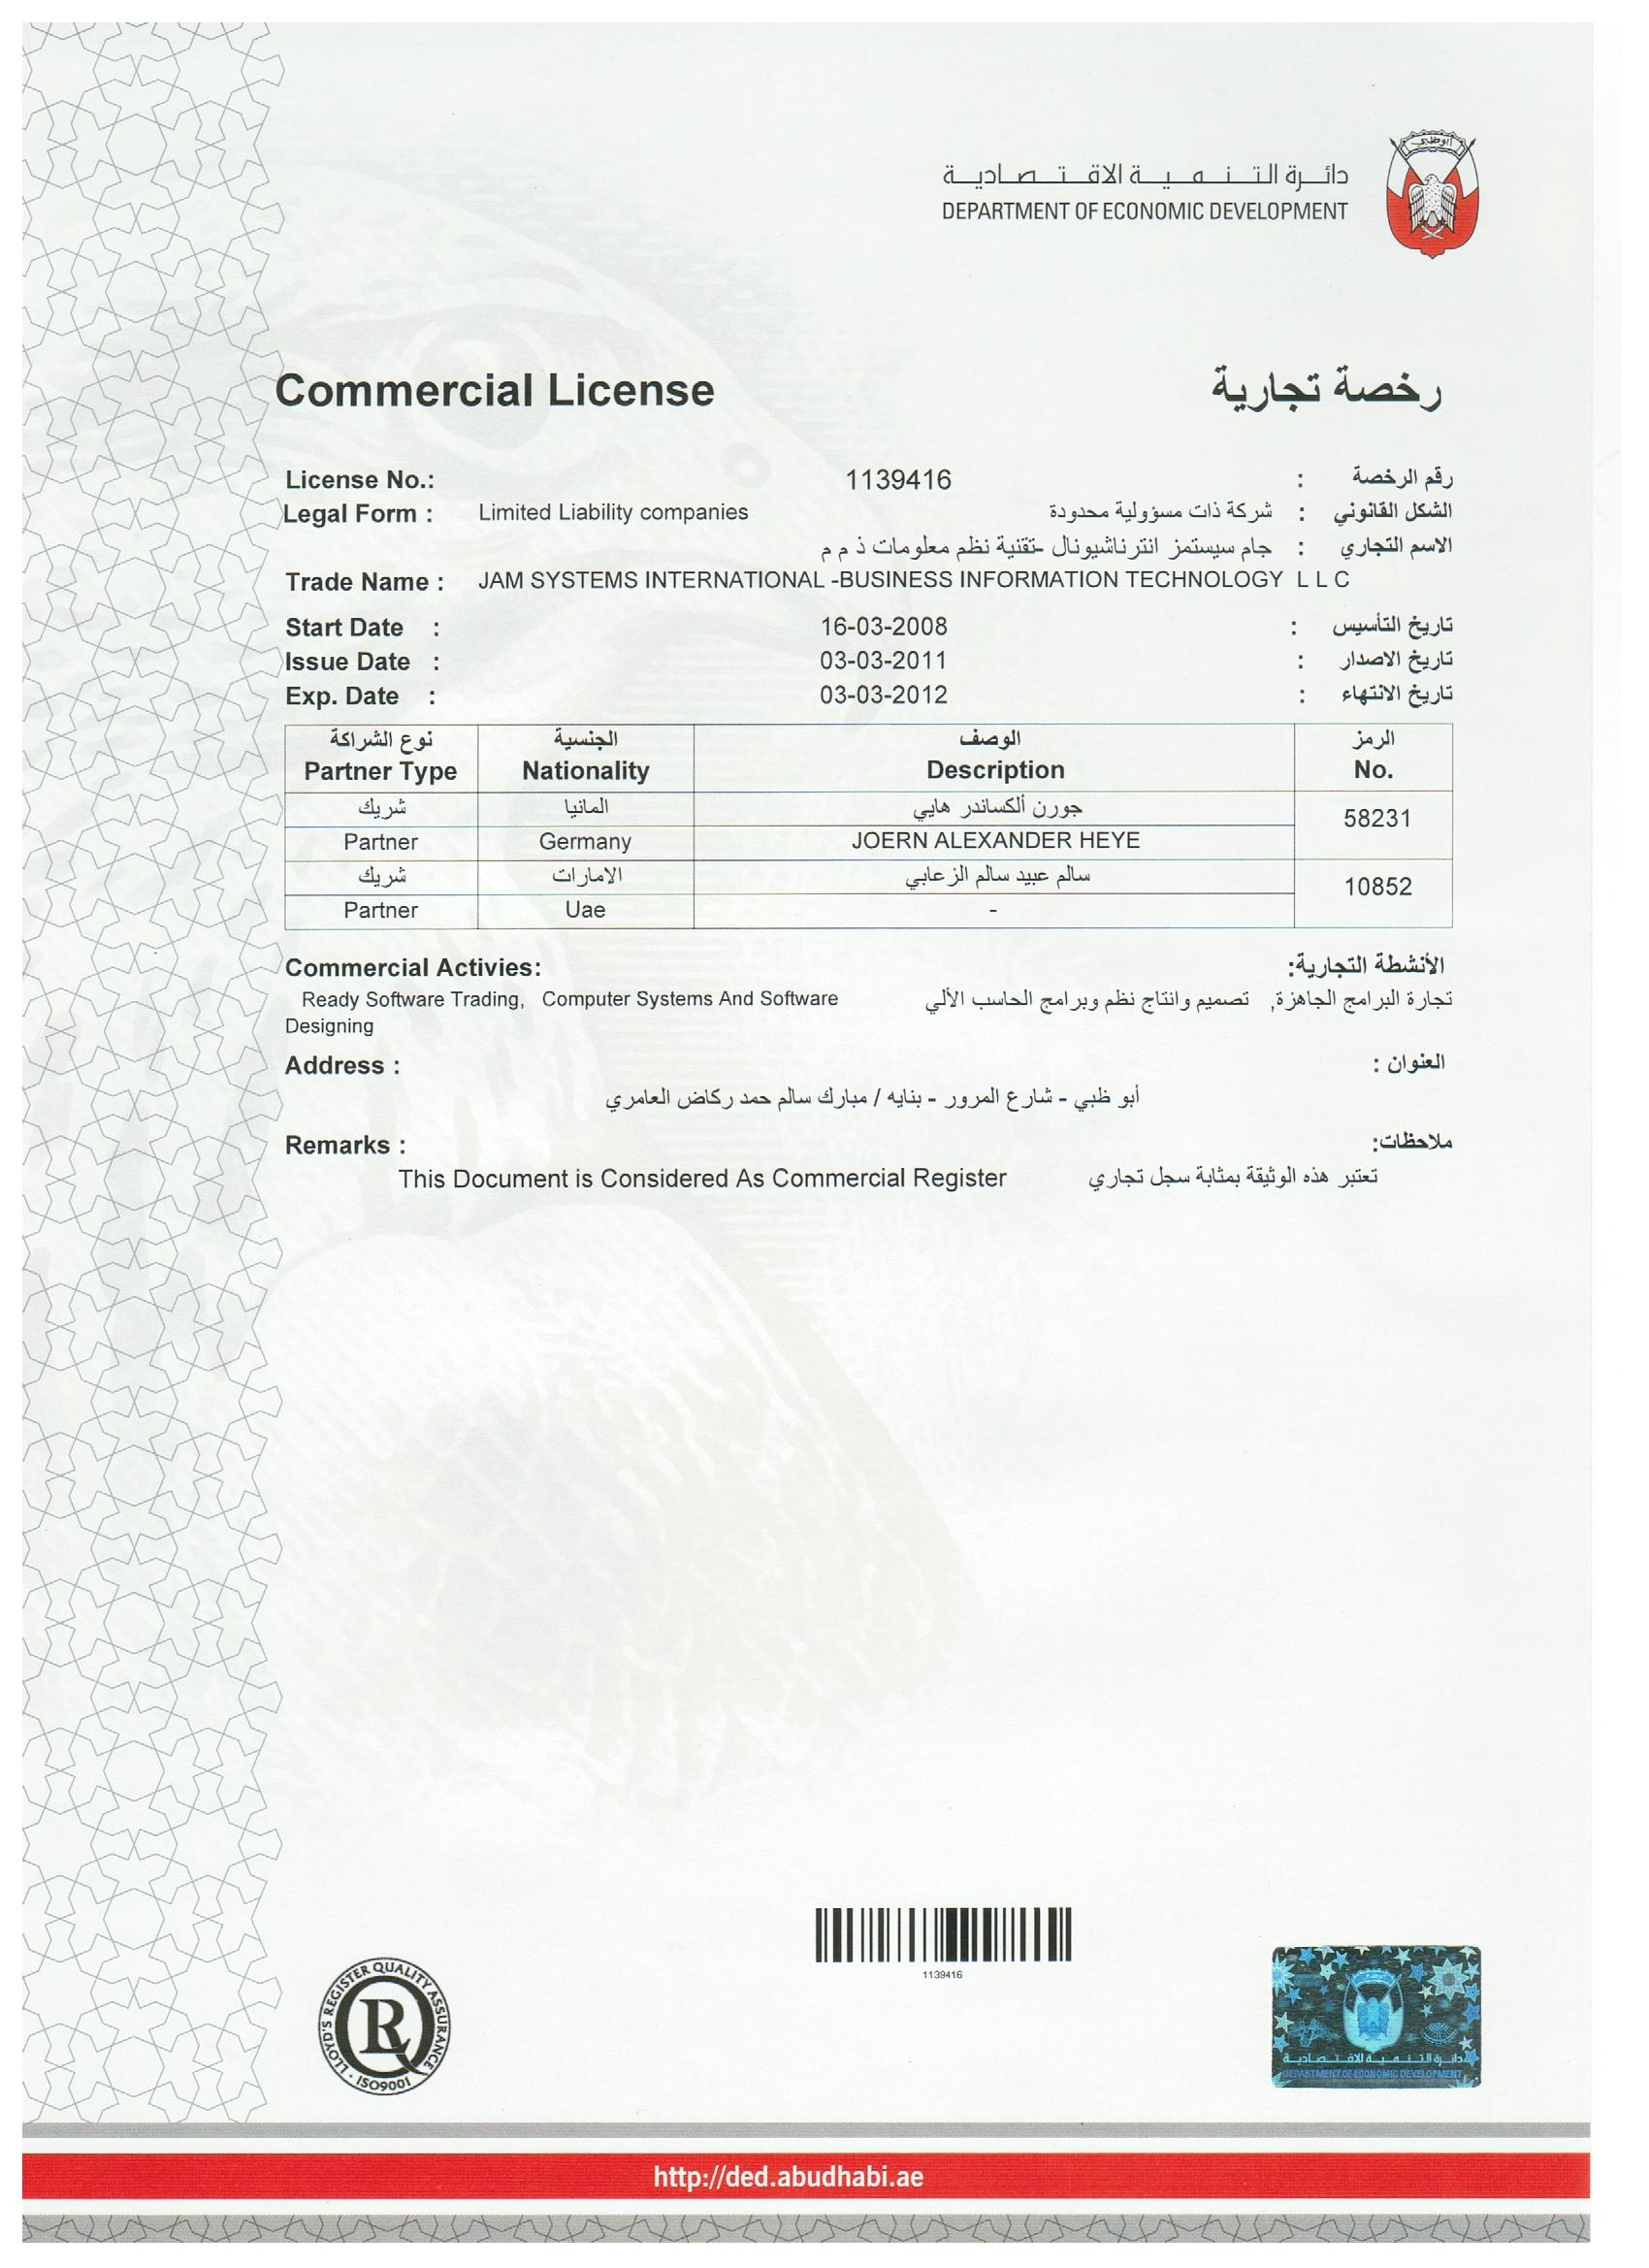 Commercial Trade License 2011